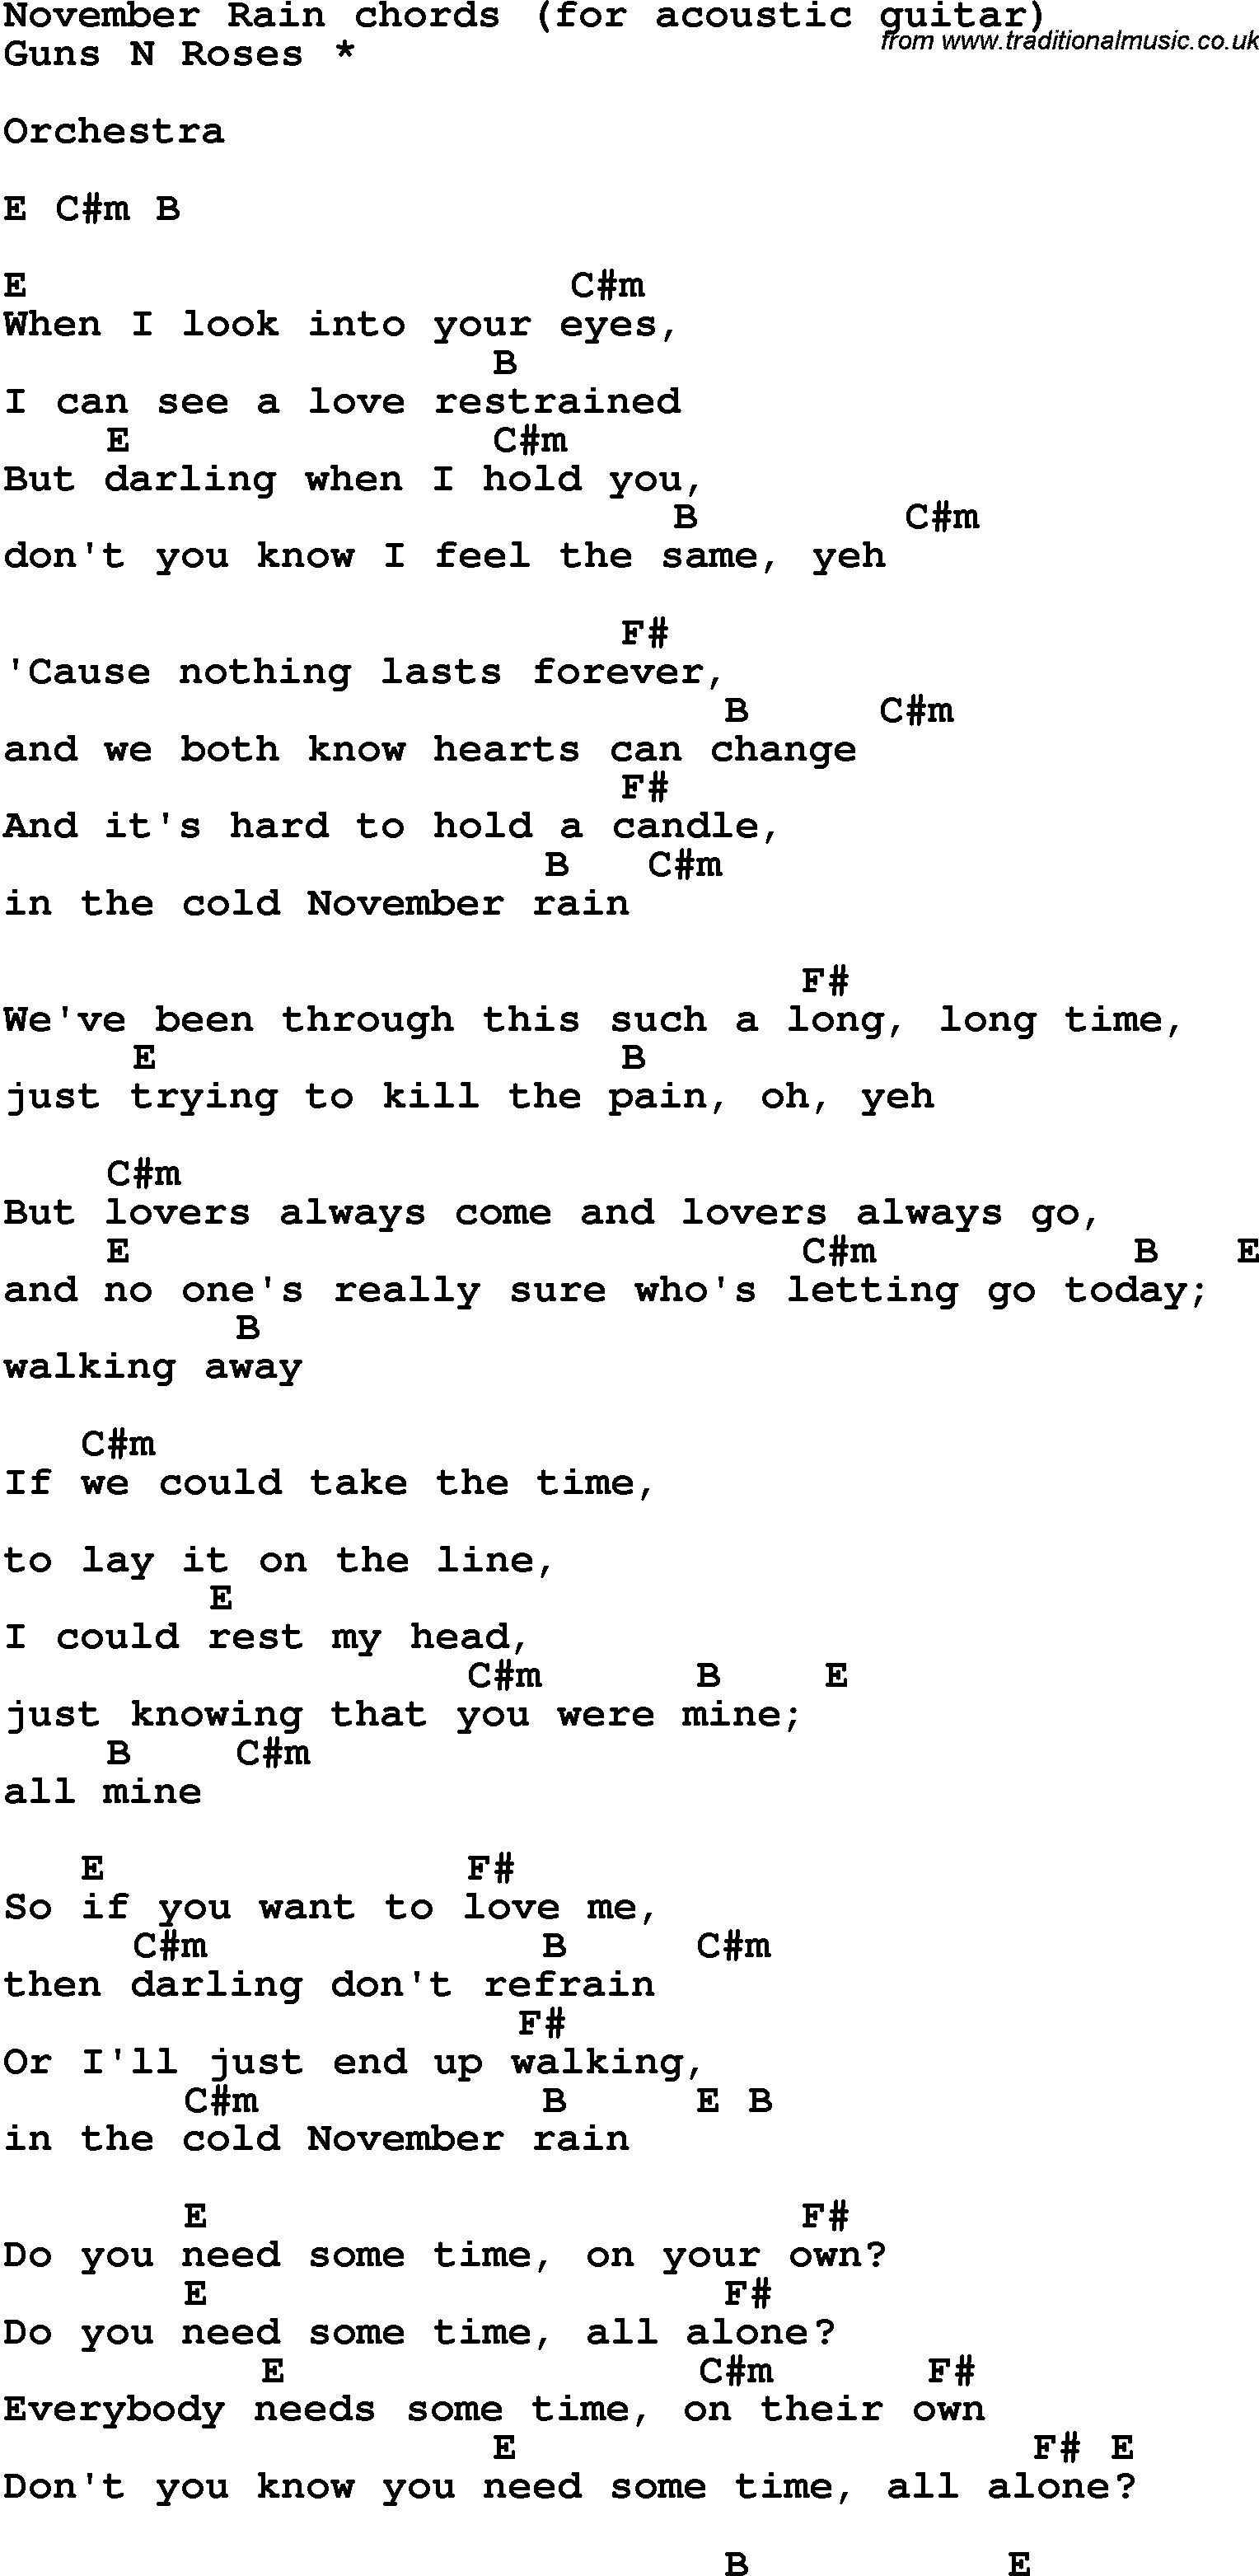 Song Lyrics With Guitar Chords For November Rain